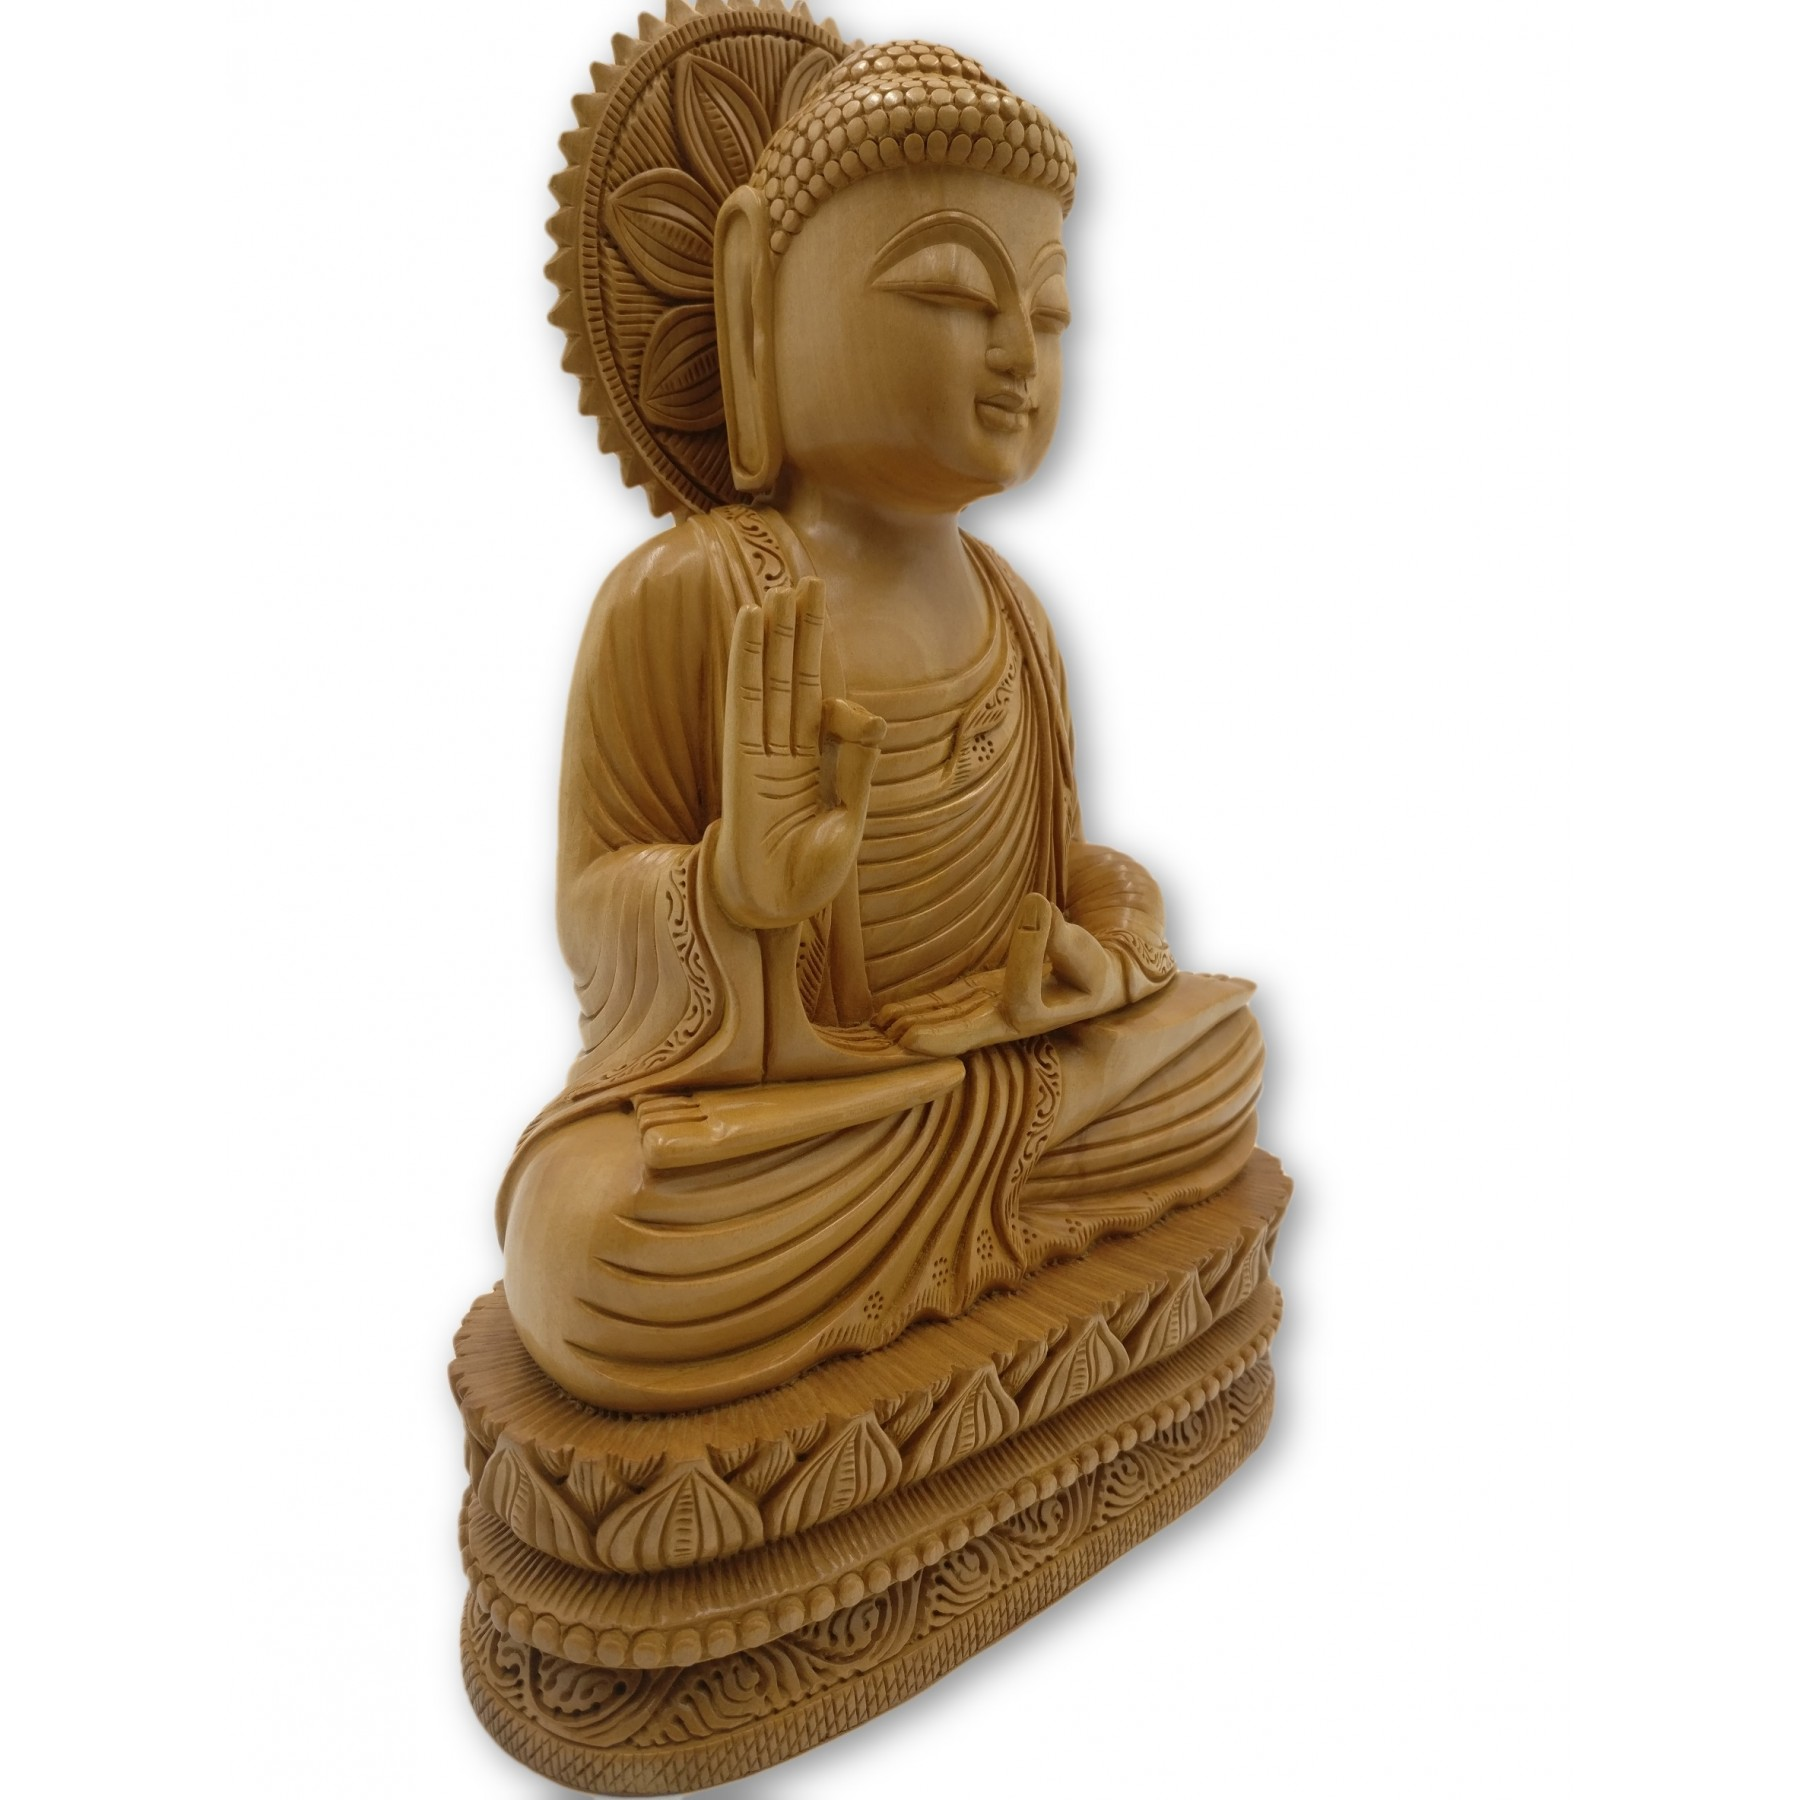 Antique Table Decor Buddha Statue Collectable Religious: Buddha Statue Sitting In Meditation In Wood 11 Inches